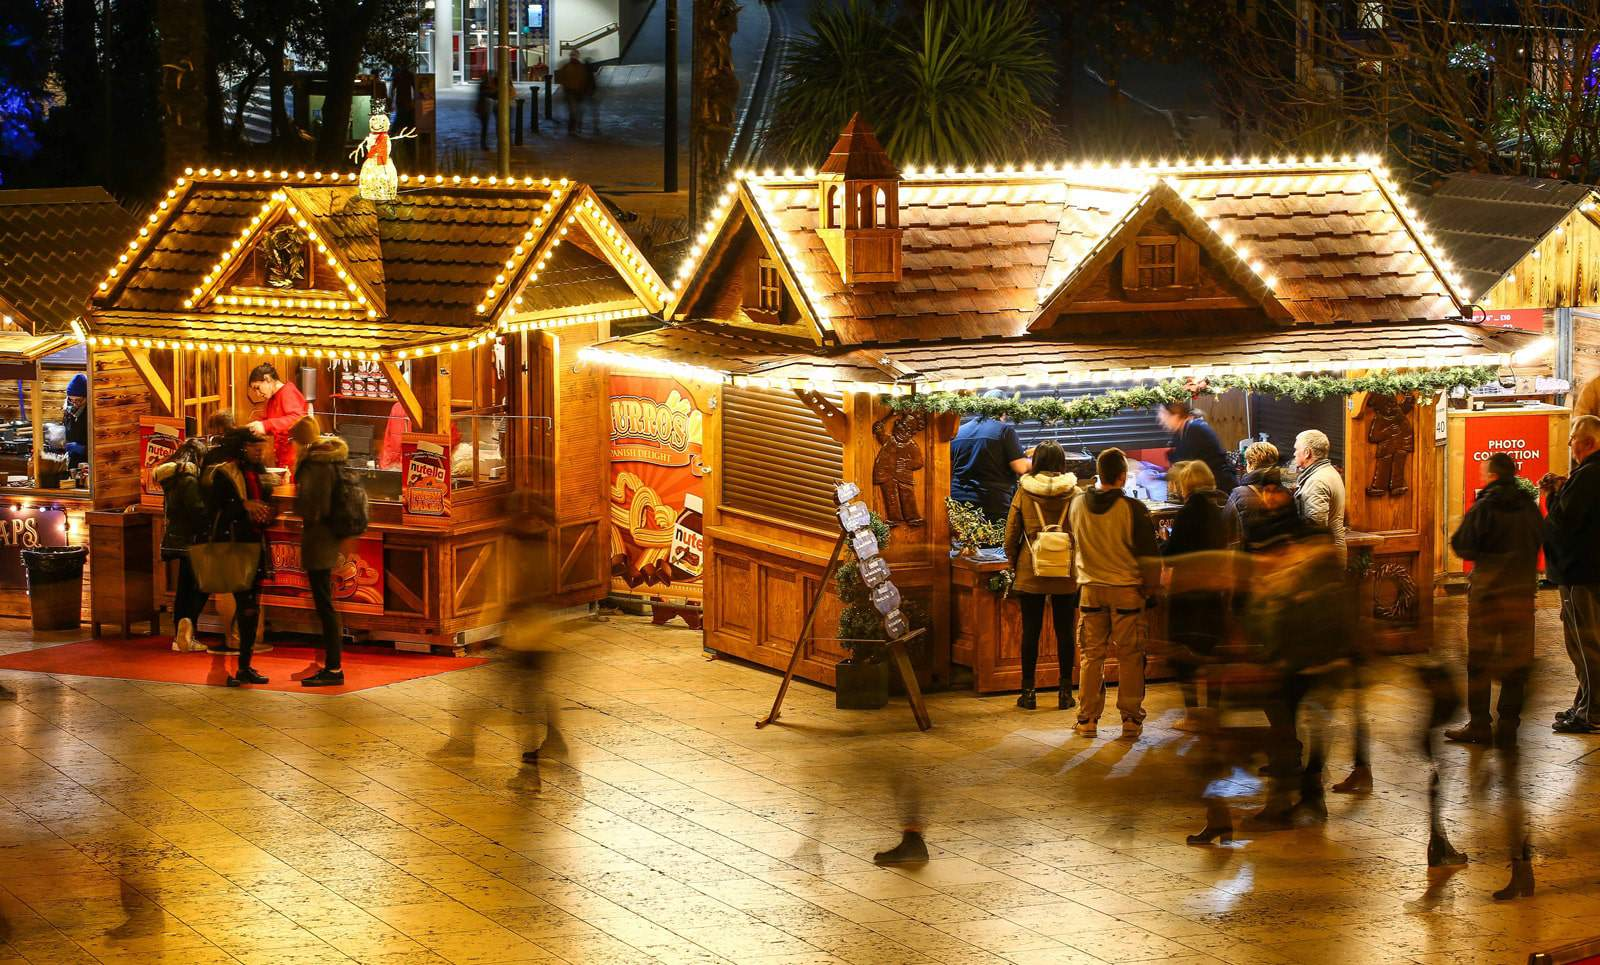 Burnbake and Bournemouth – the perfect Christmas combination